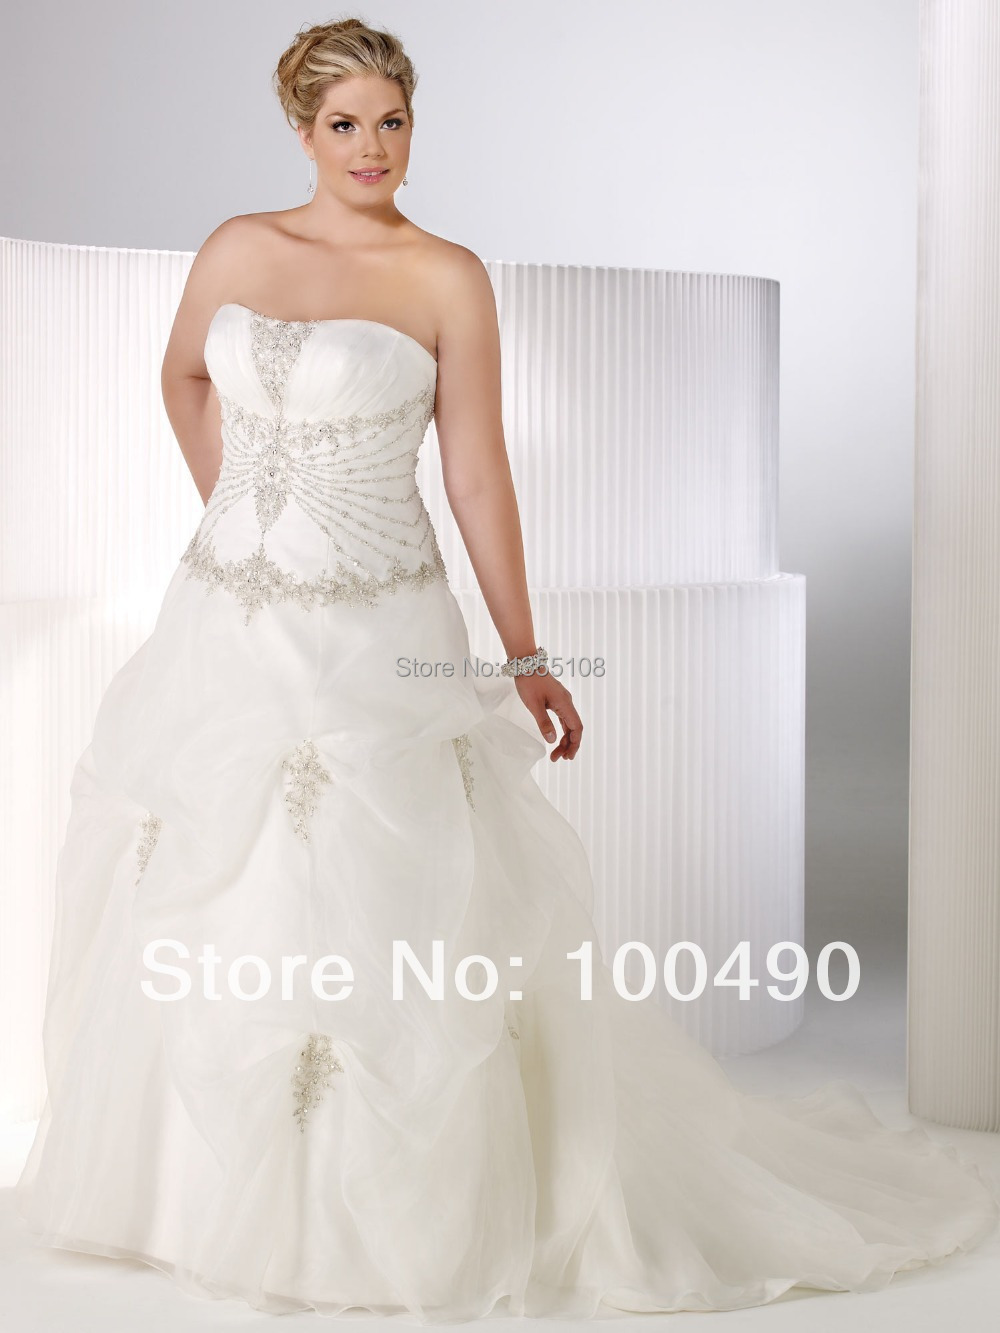 US $400.0 |Customed9Puffy ball gown wedding Plus size bridal dresses  diamante on Natural waistline silver outline appliques with sequins an-in  Wedding ...